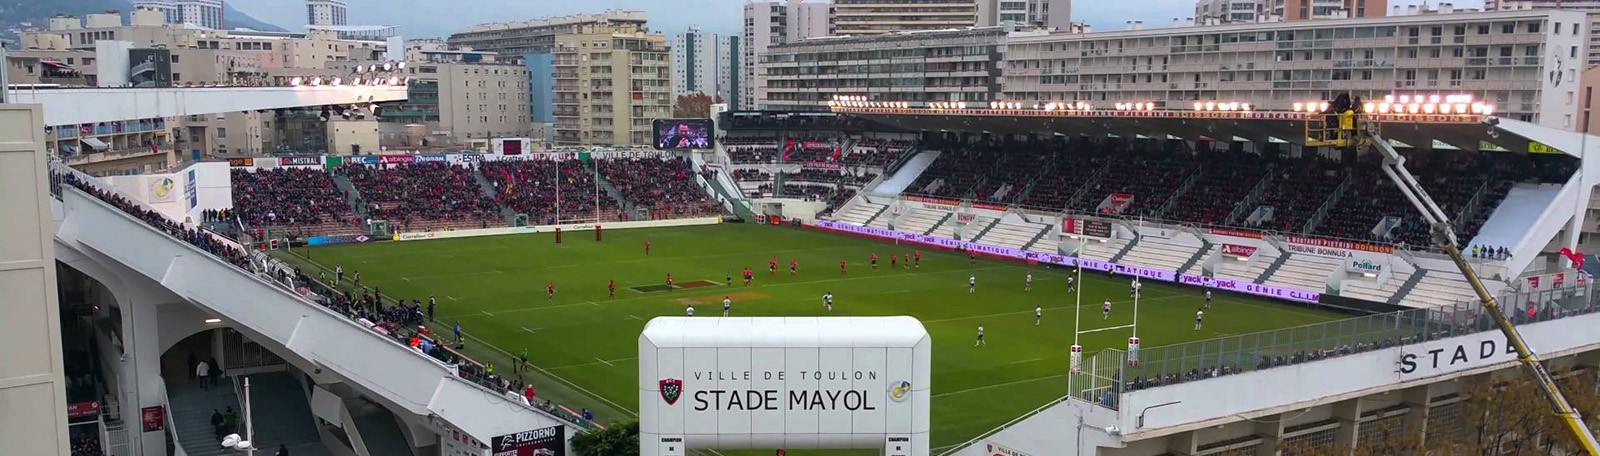 Car Park Toulon Mayol Stadium